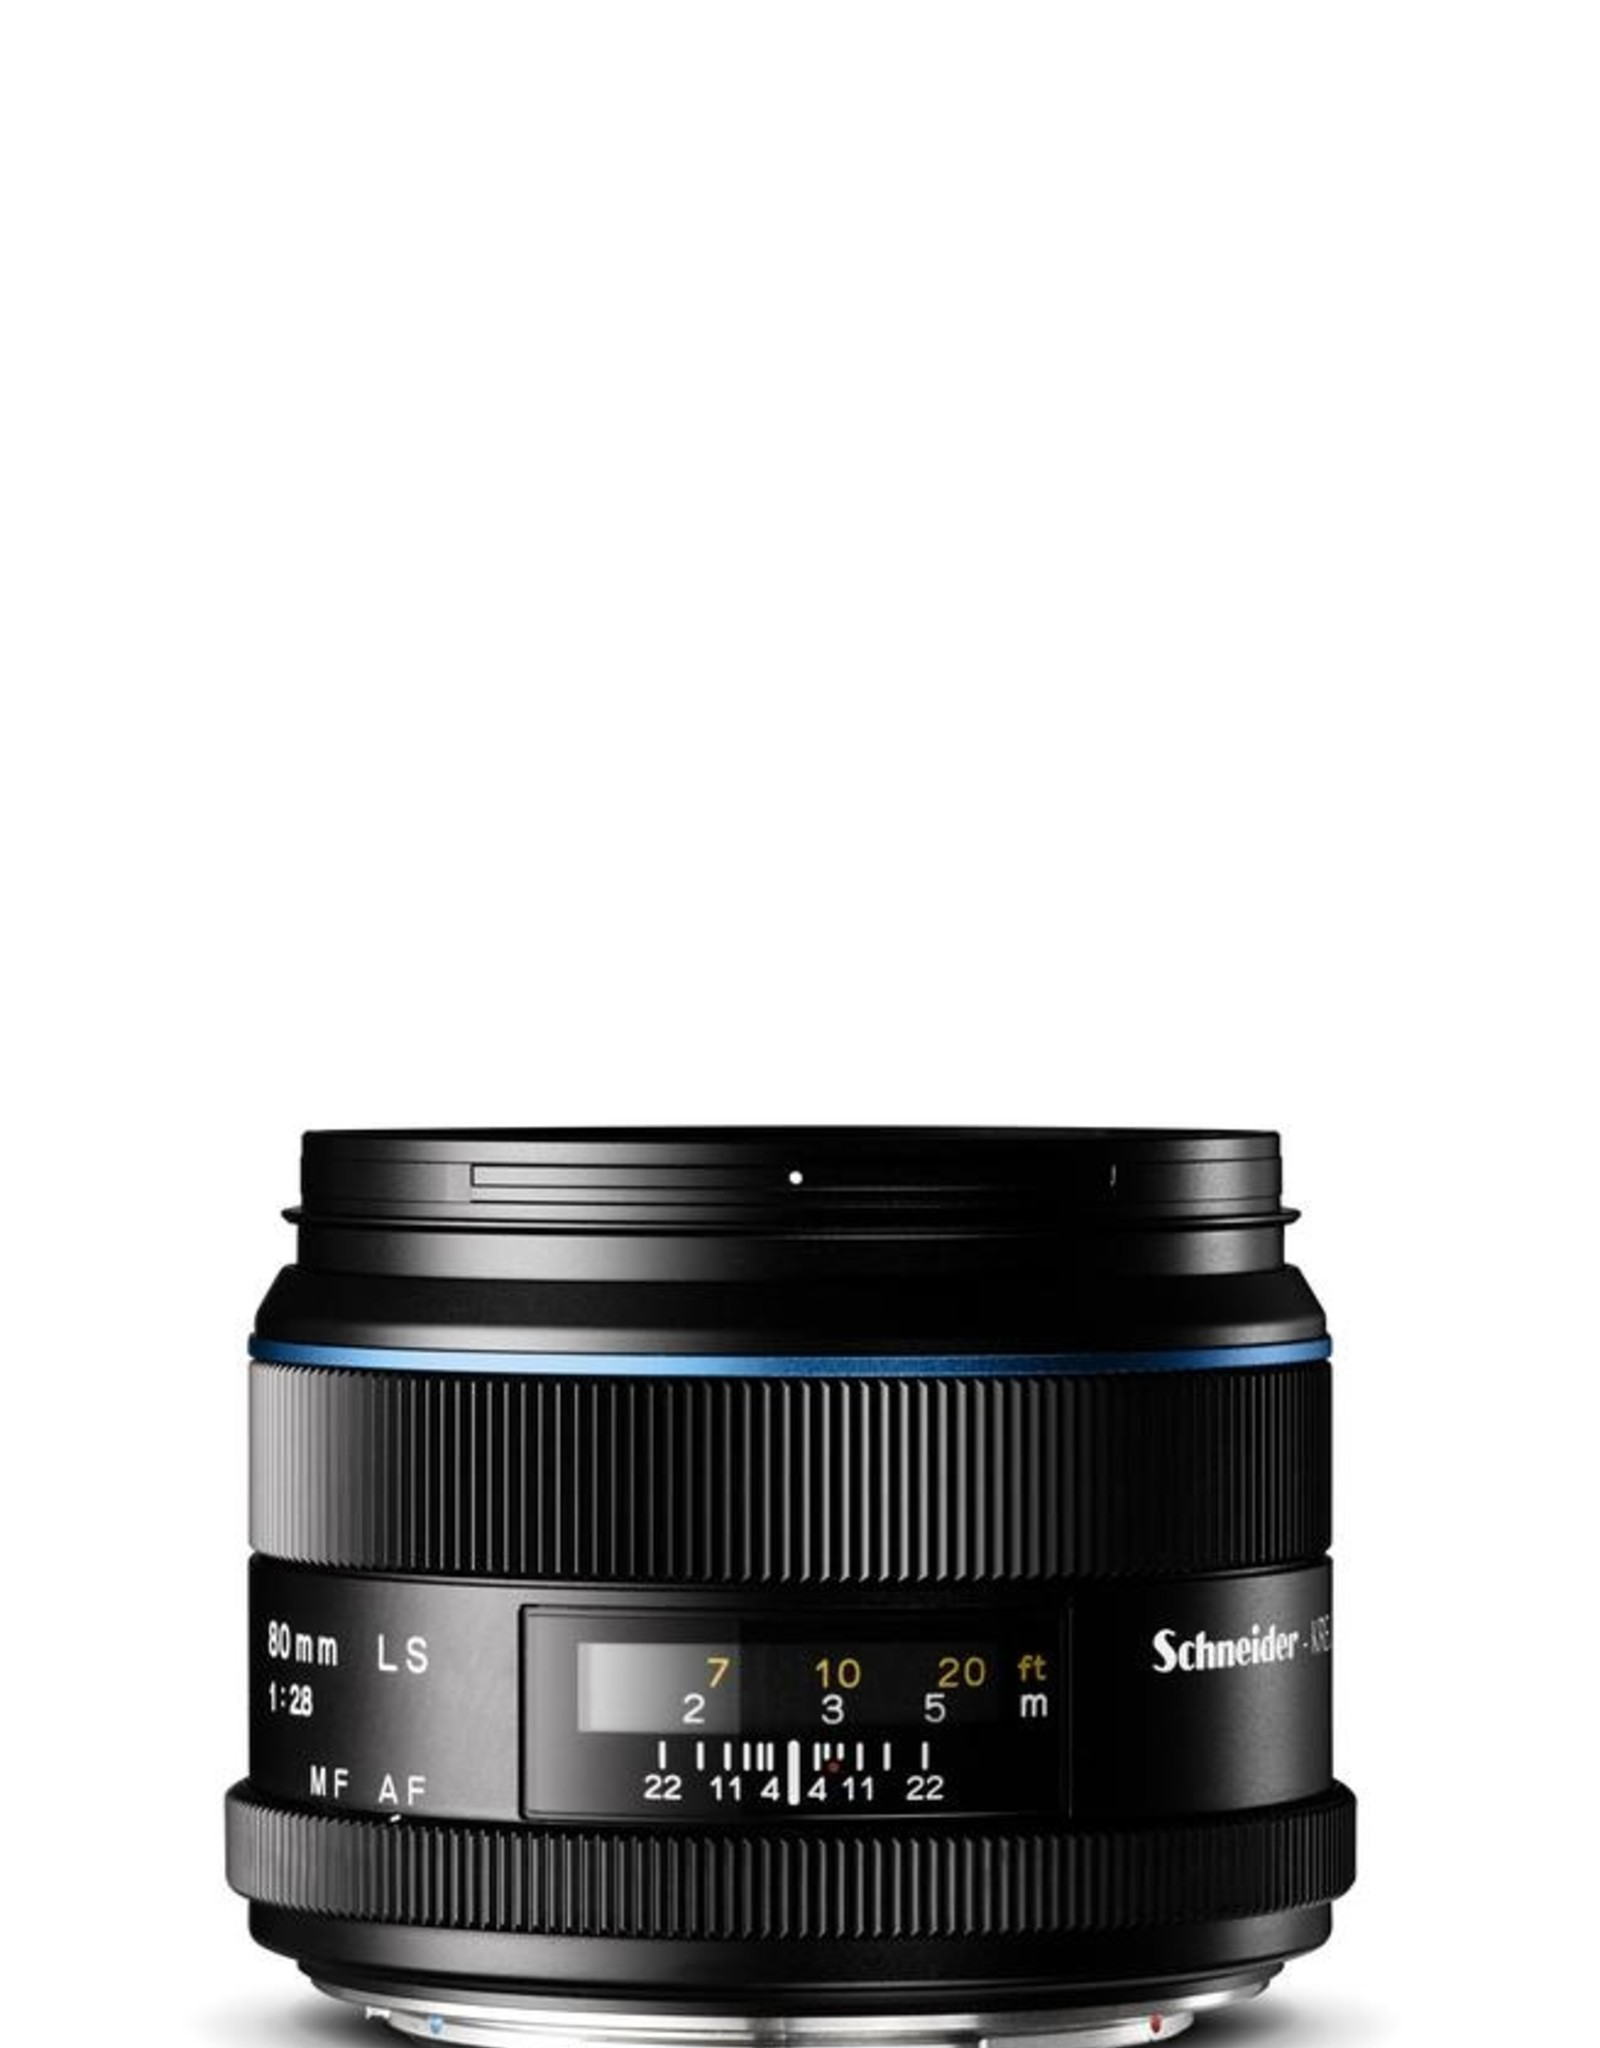 Phase One Phase One Schneider Kreuznach 80mm LS f/2.8 Blue Ring Lens